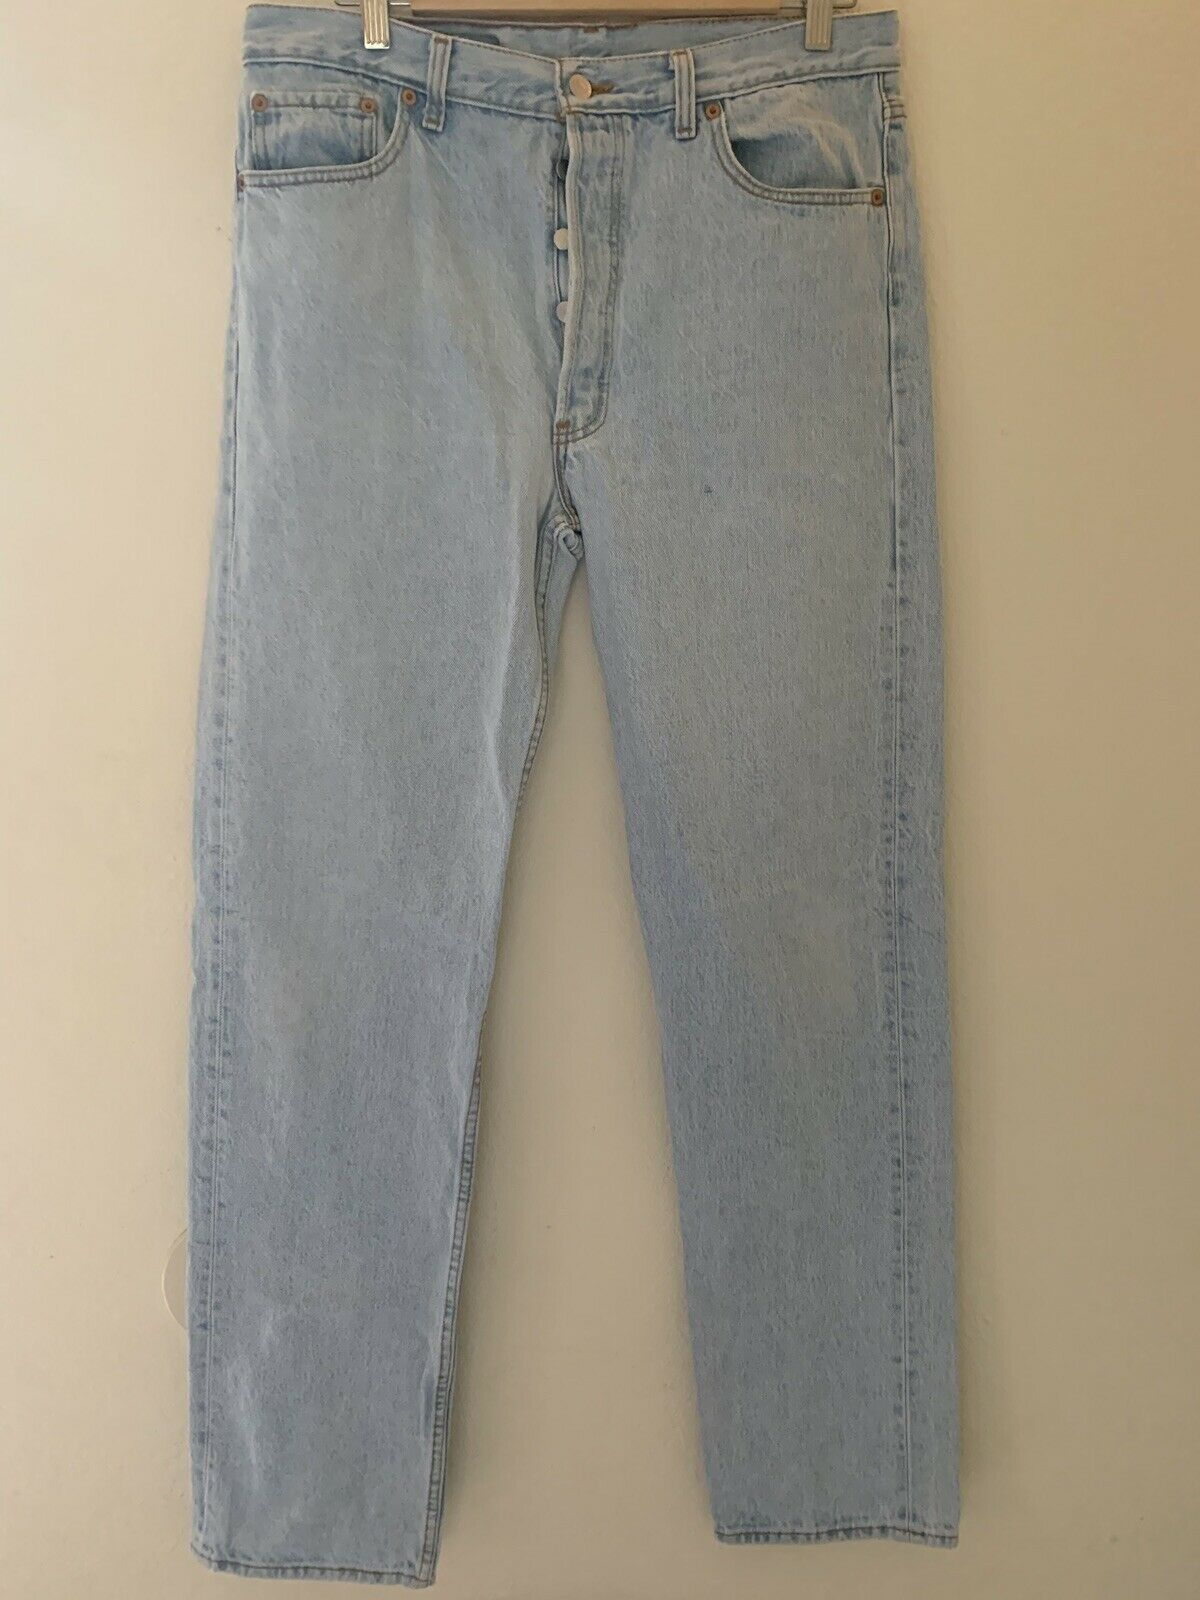 Levis Vintage 501 Made In USA - image 1